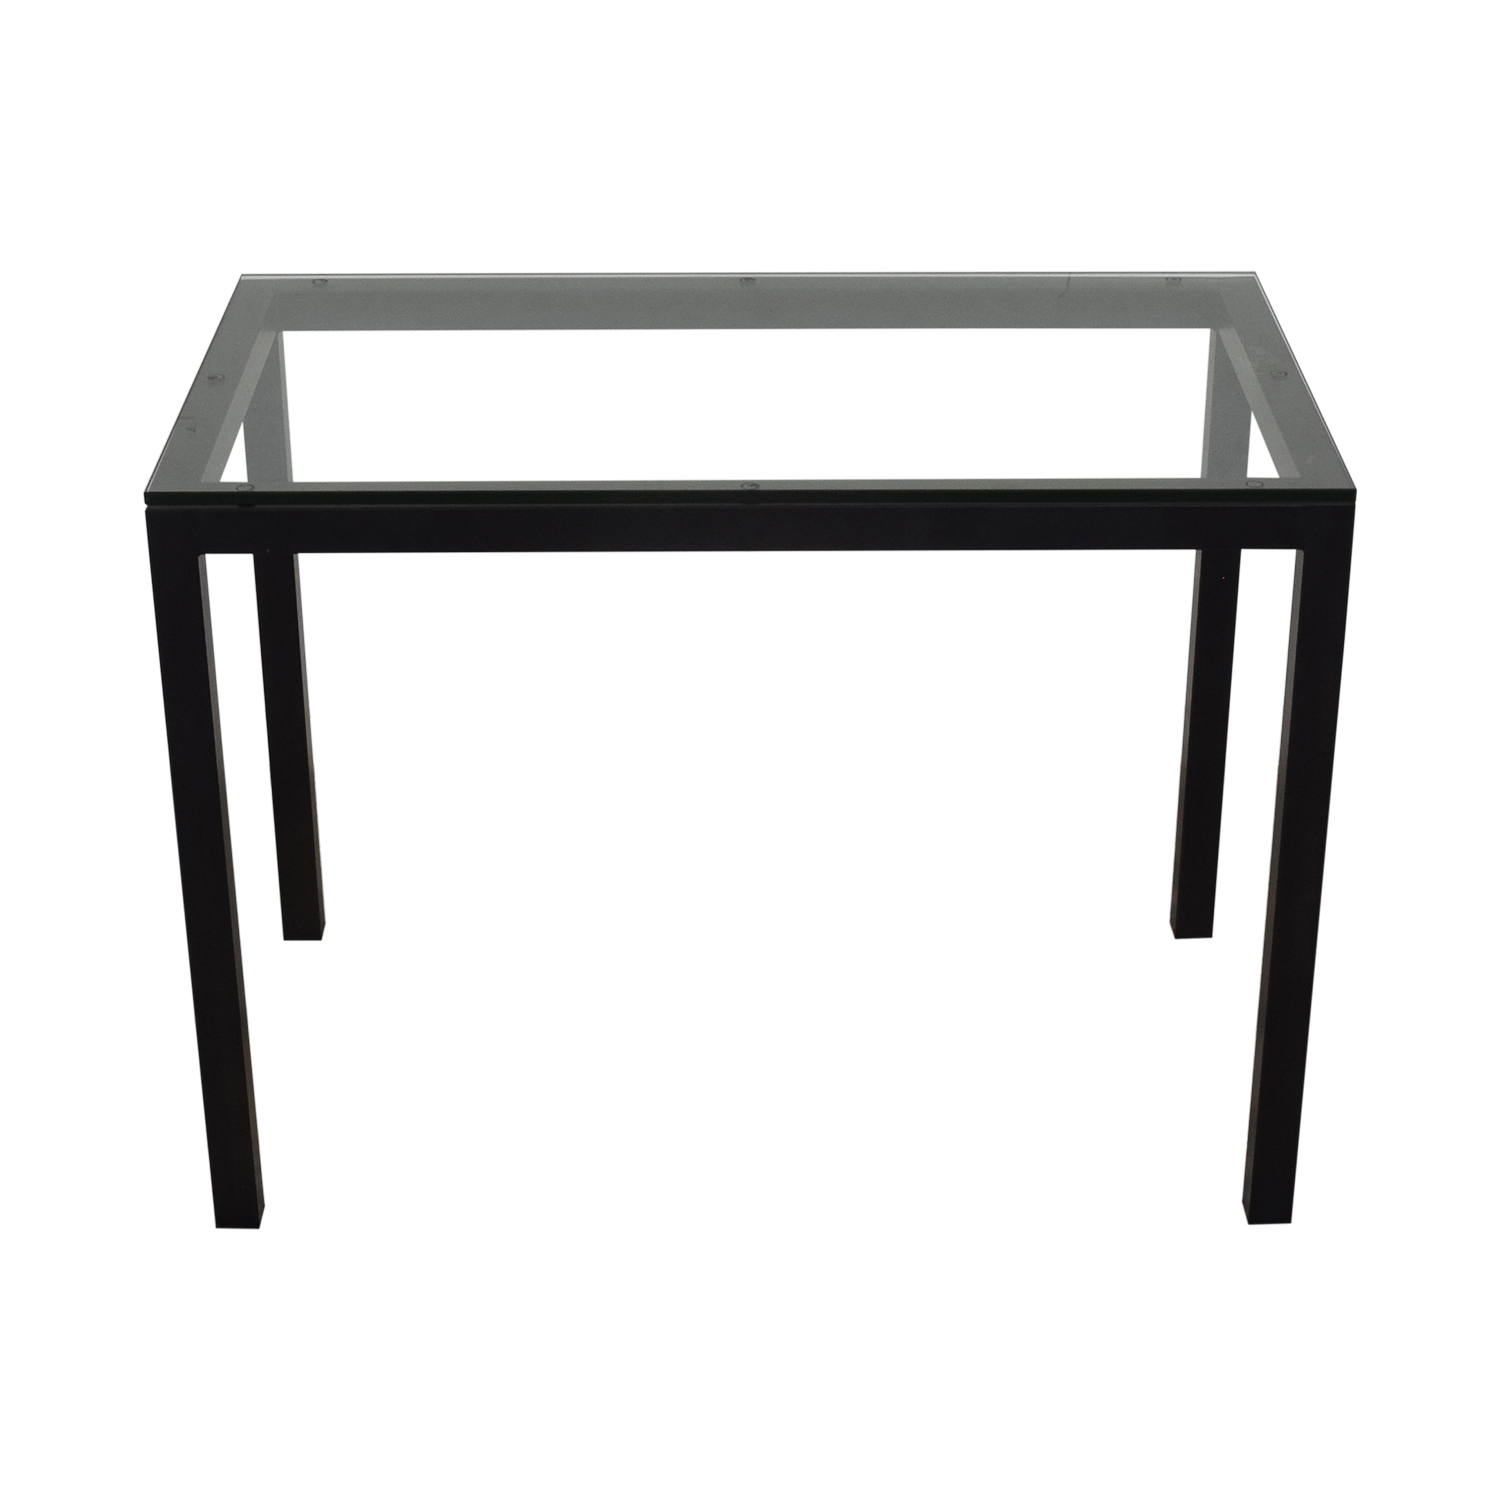 Crate & Barrel Crate & Barrel Parsons High Dining Table coupon